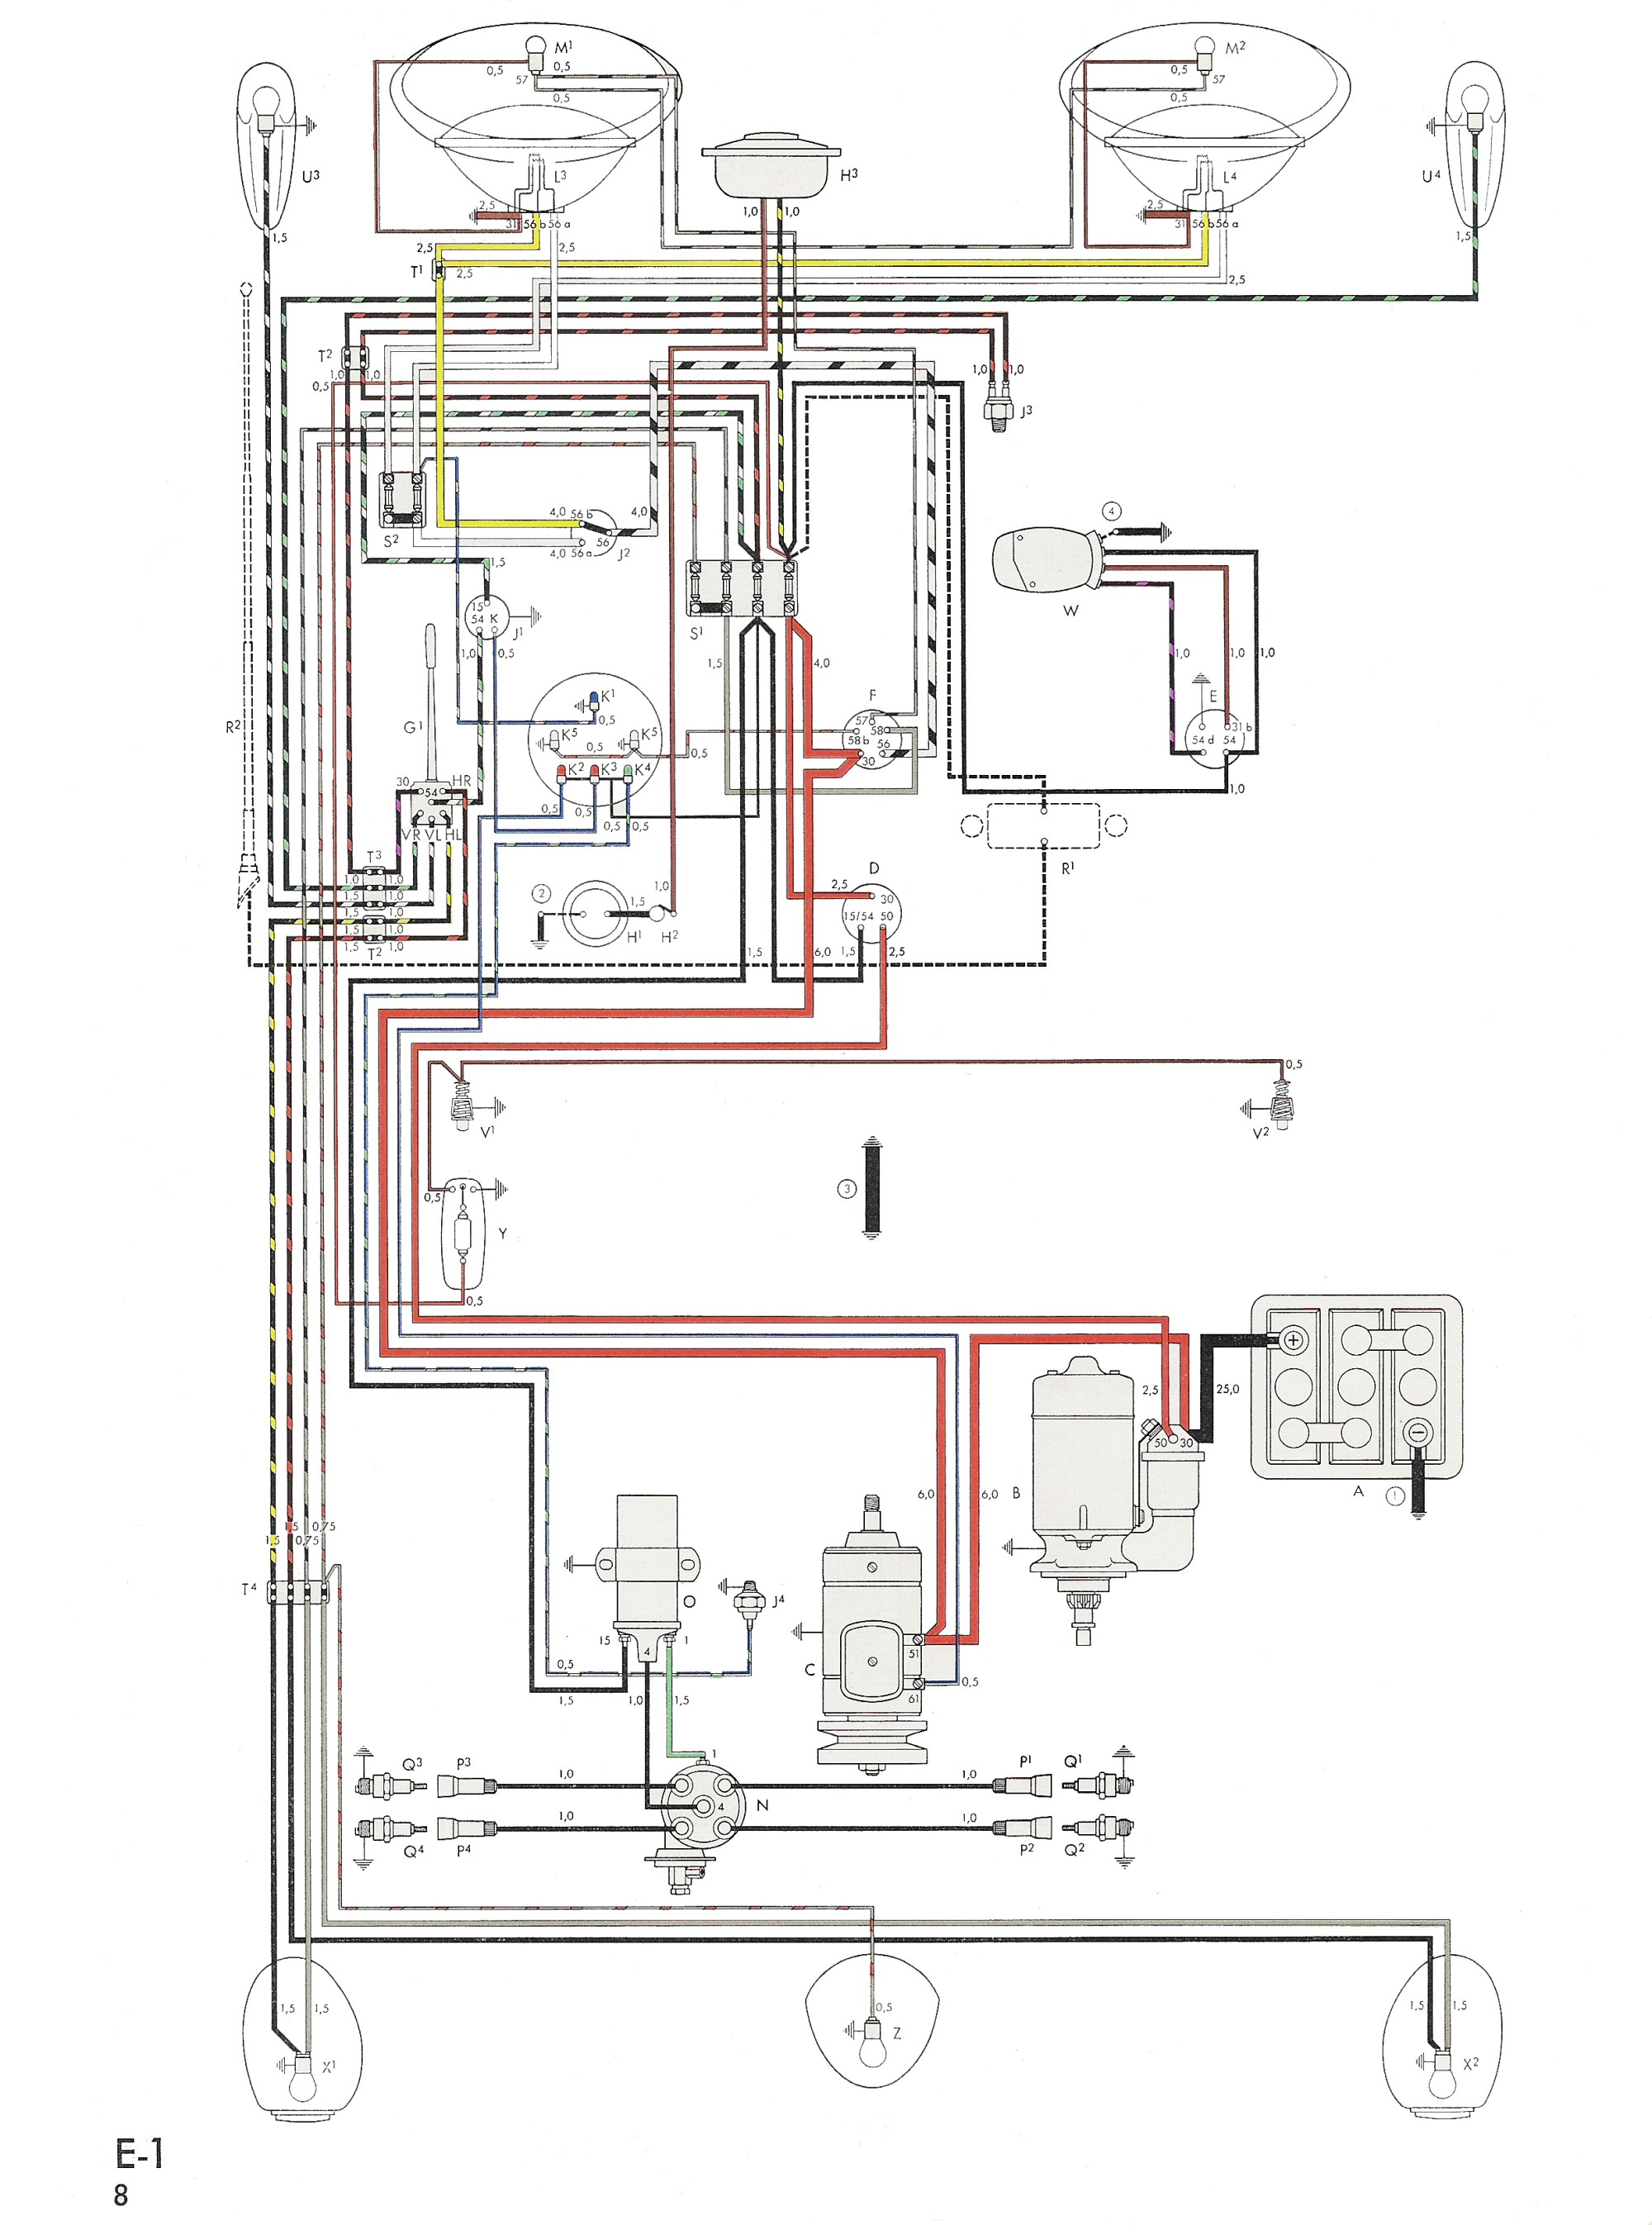 hight resolution of thesamba com type 1 wiring diagrams 70 vw bus wiring diagram 70 vw wiring diagram